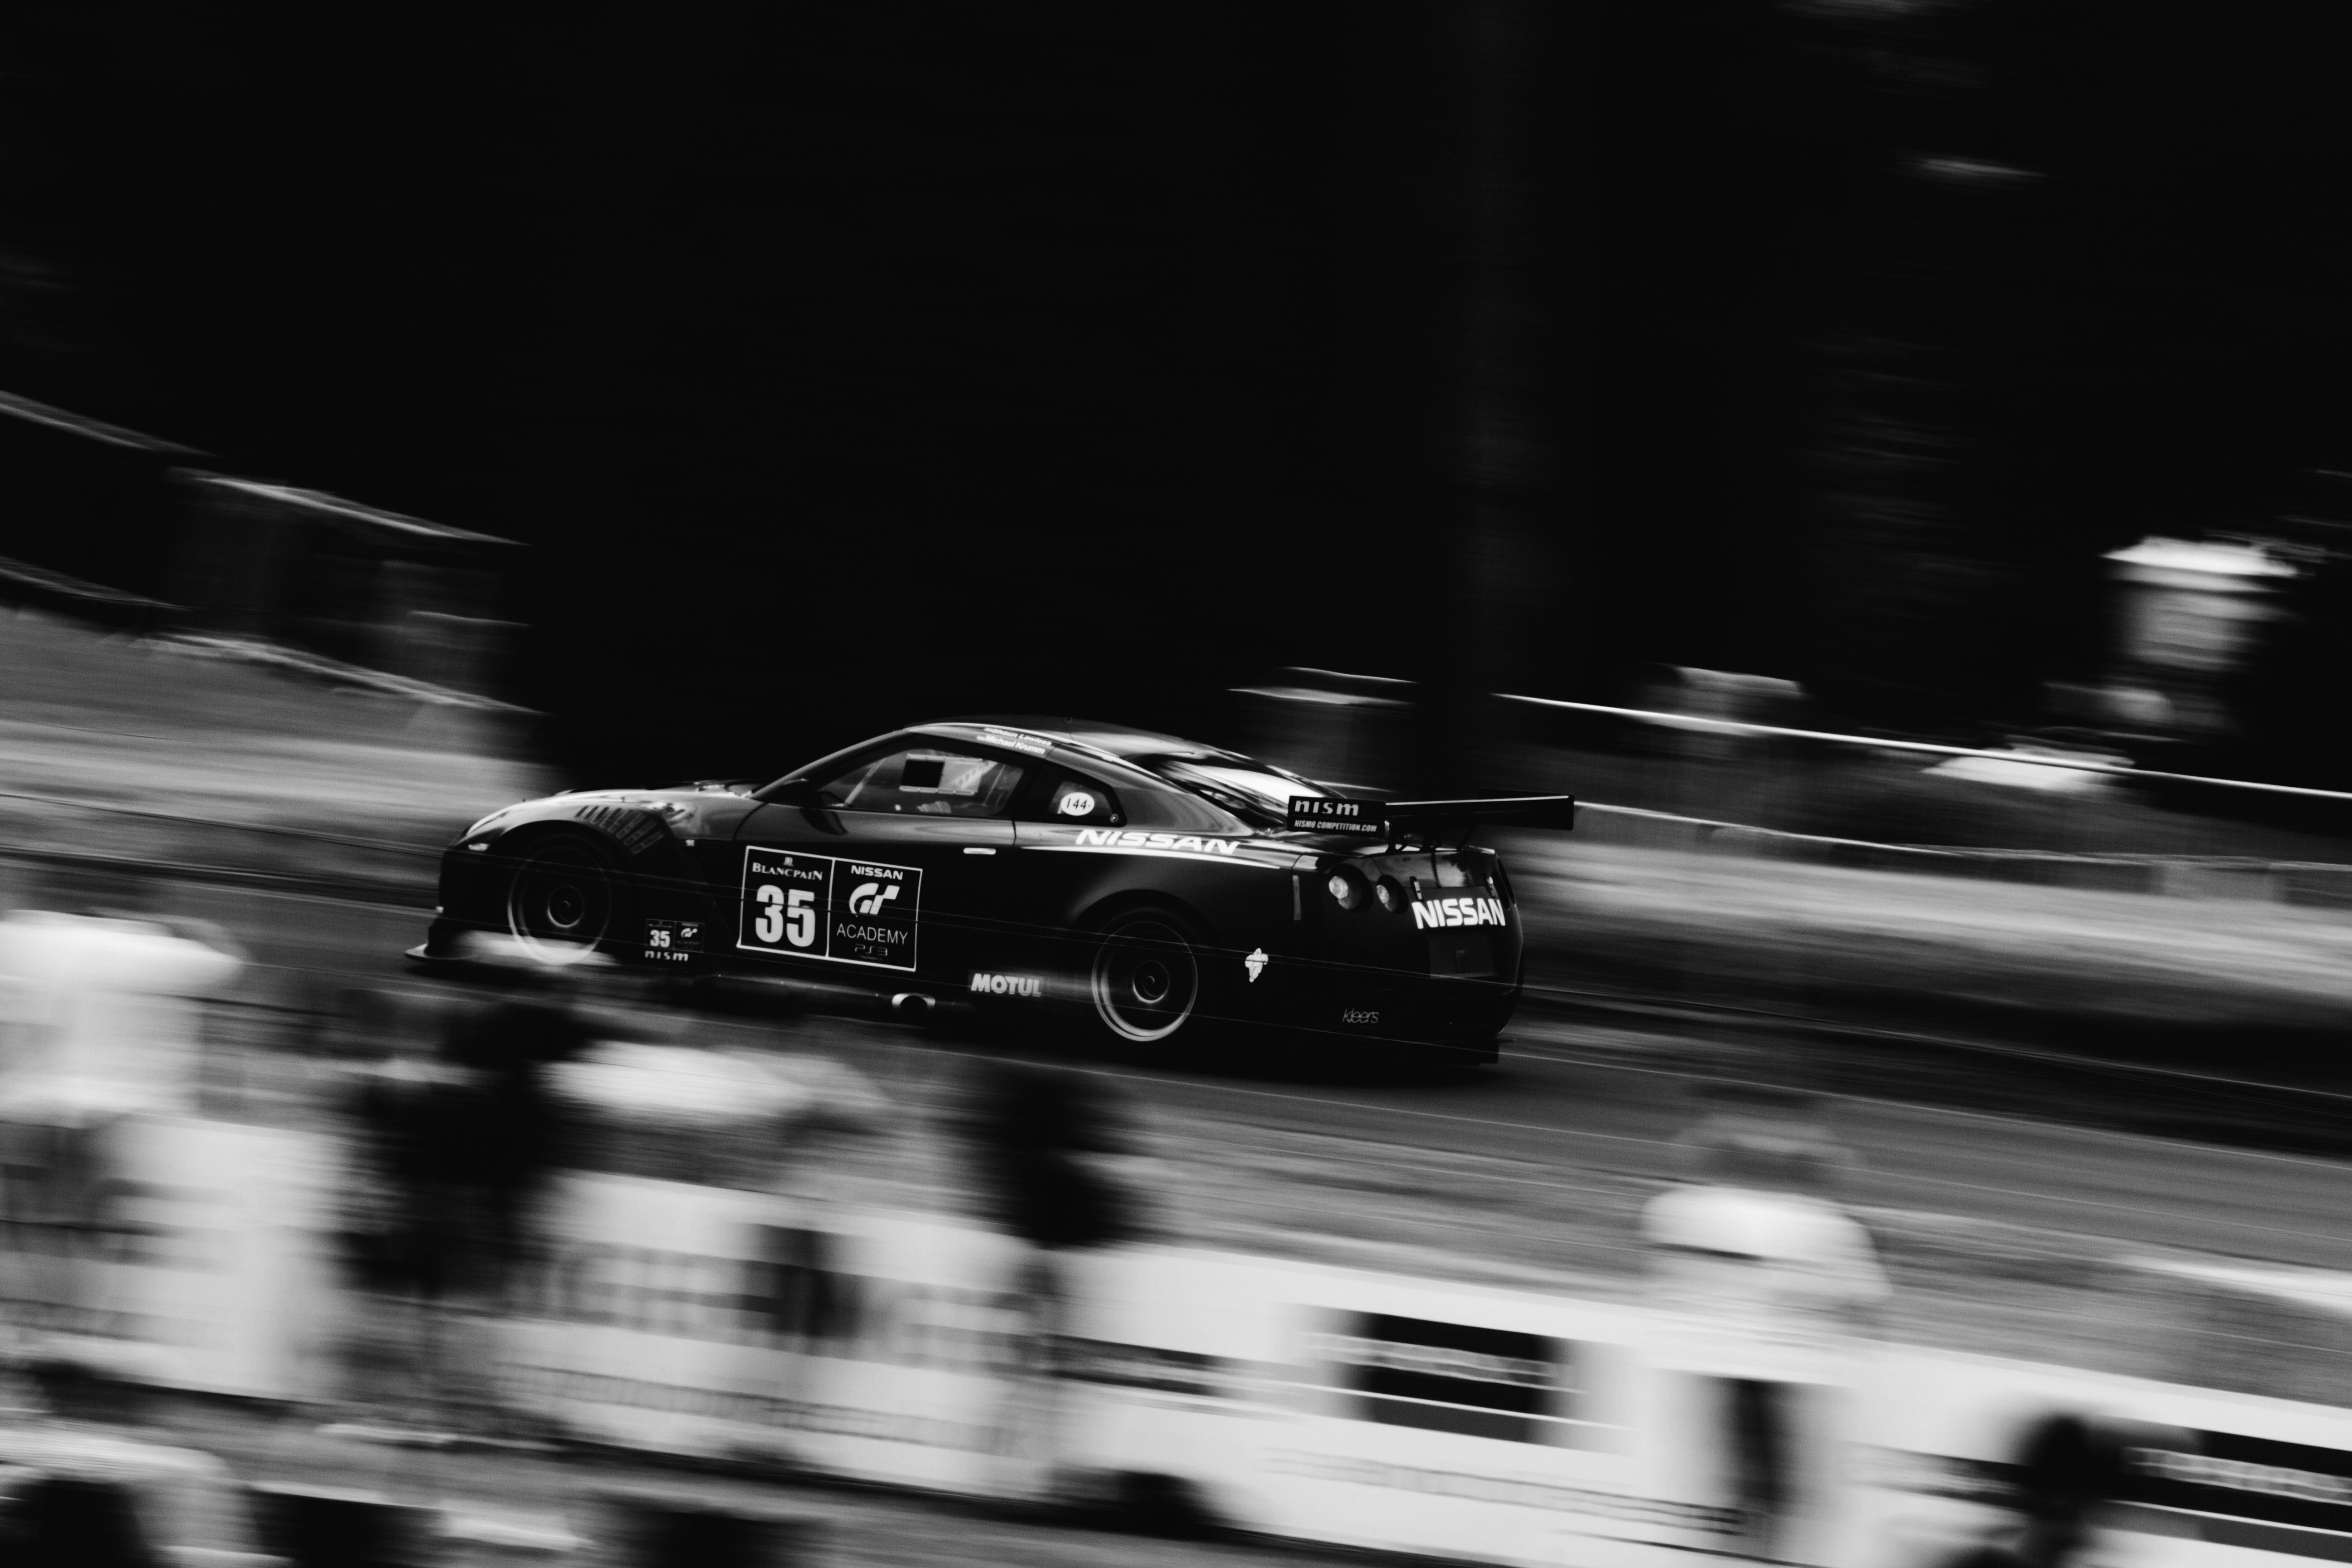 Black and white shot of racing car on track in Droitwich, England, United Kingdom